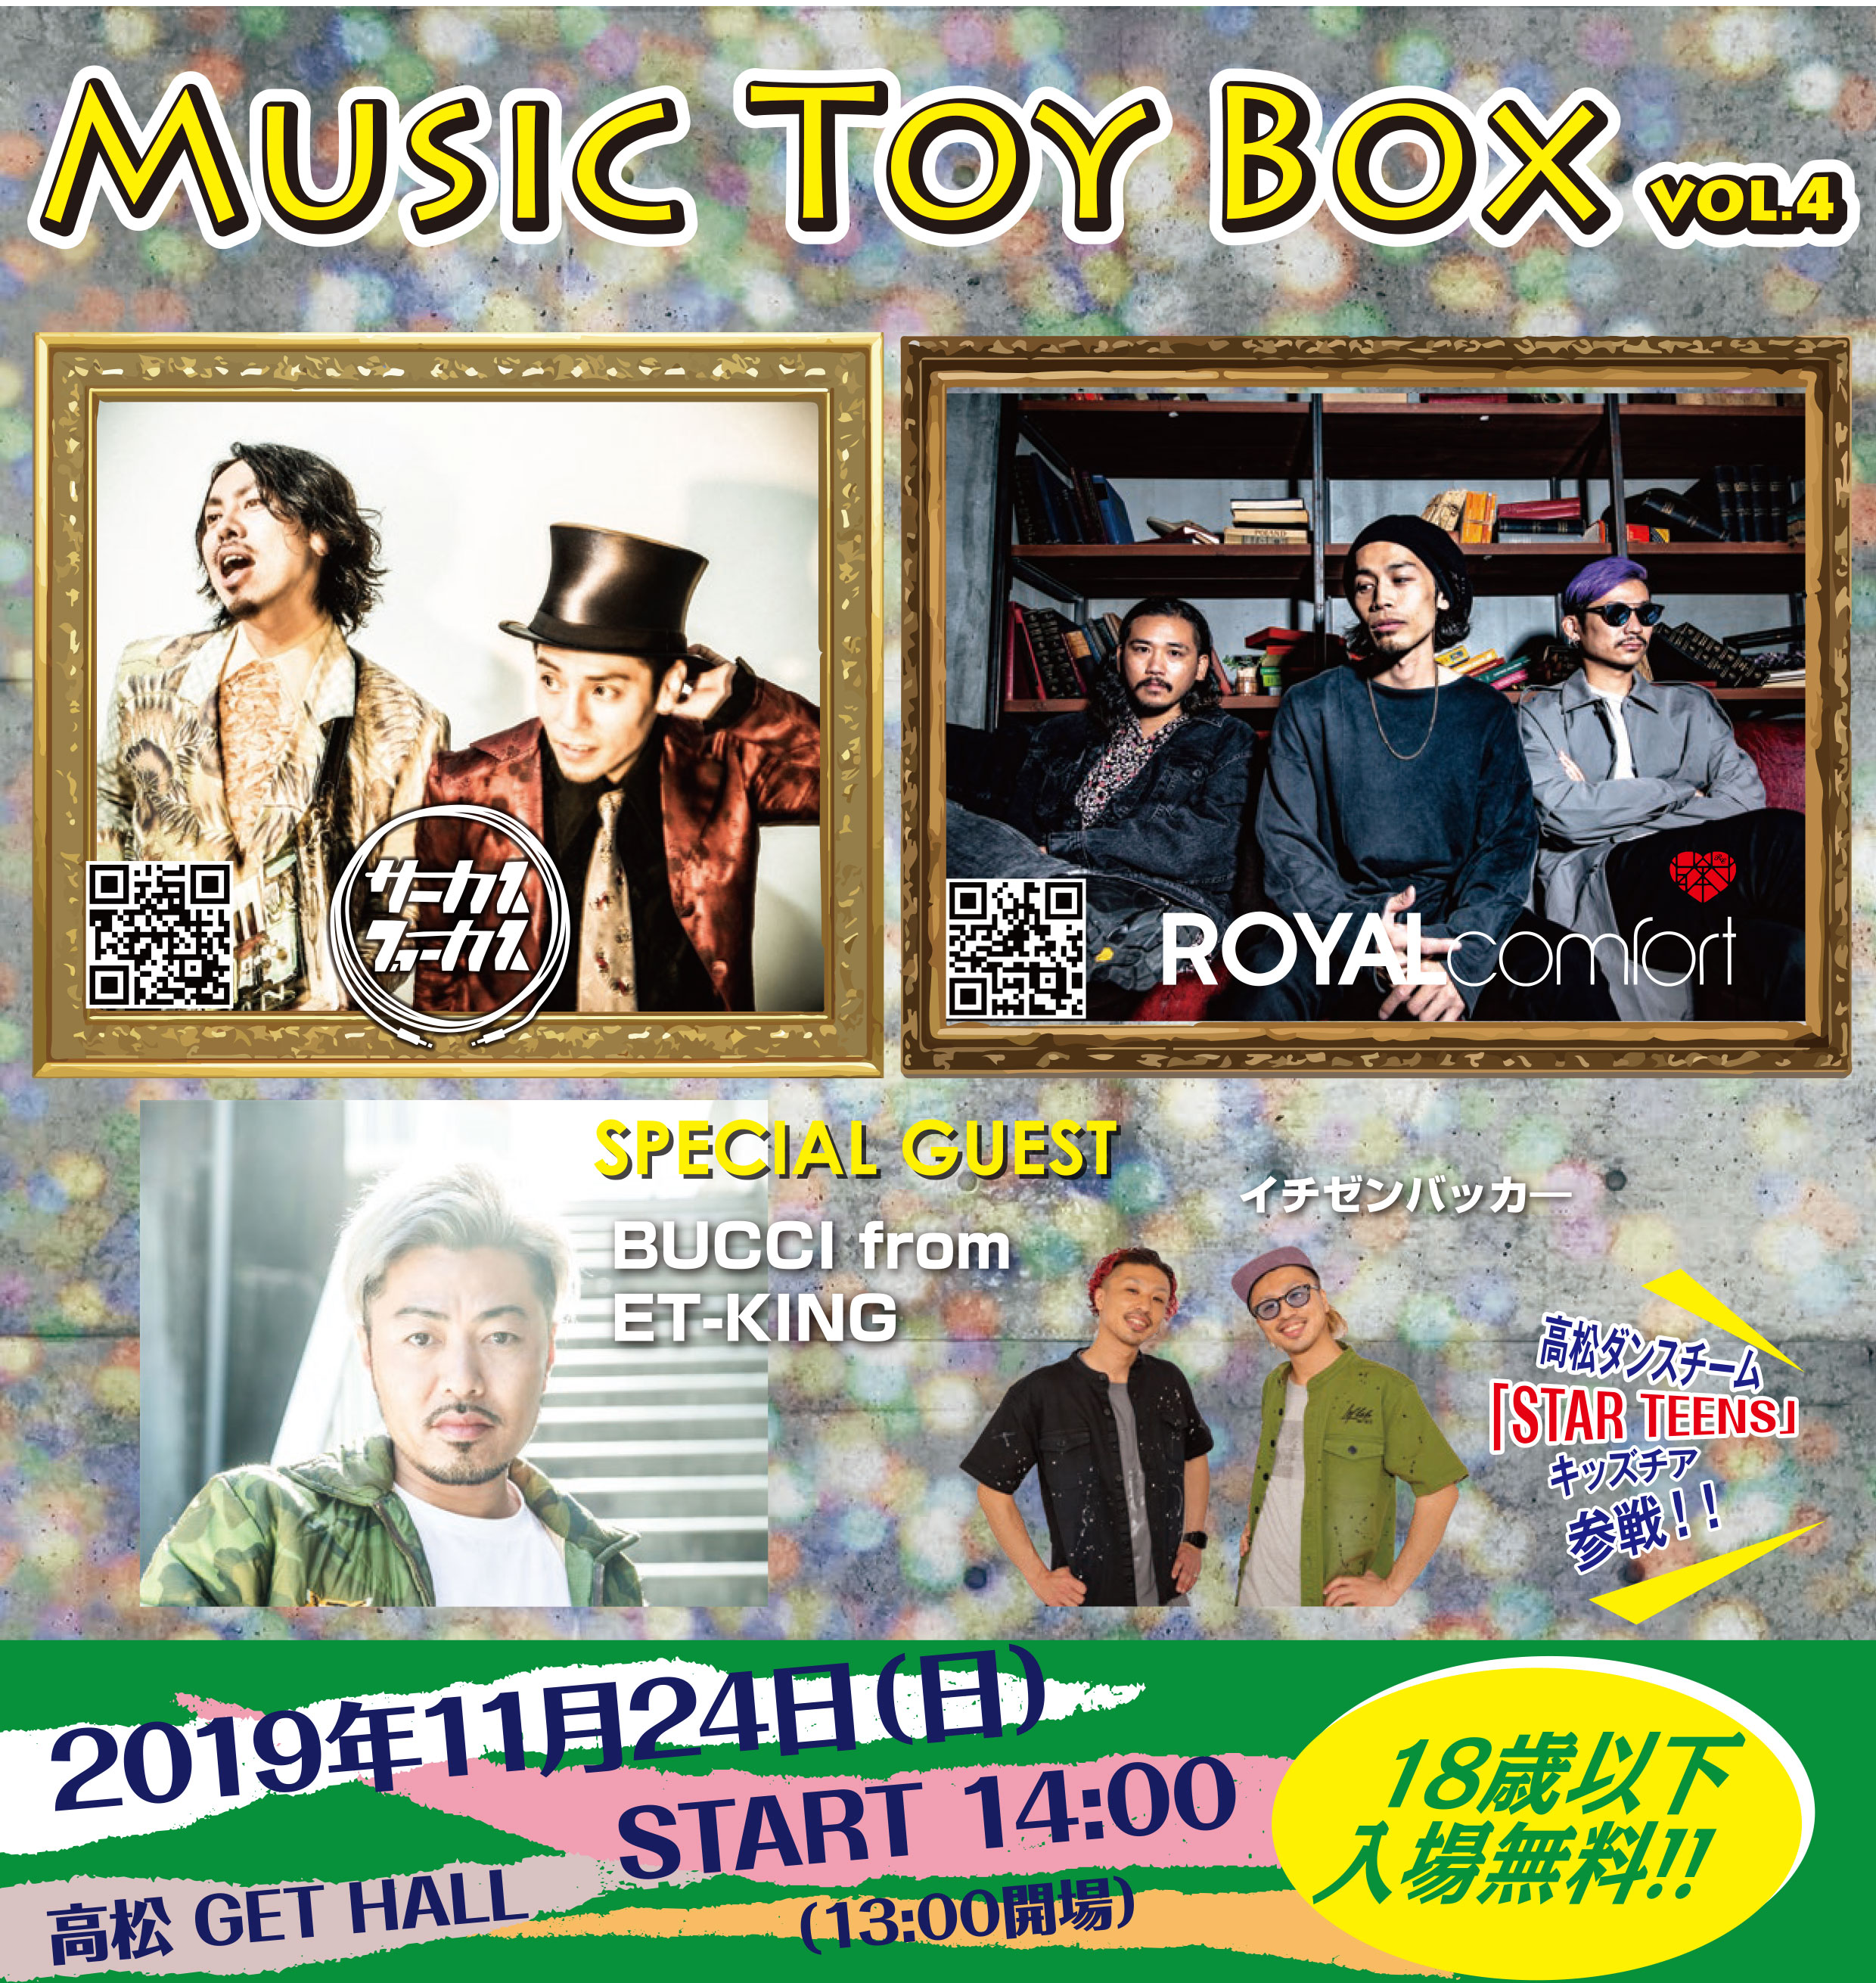 MUSIC TOY BOX vol.4